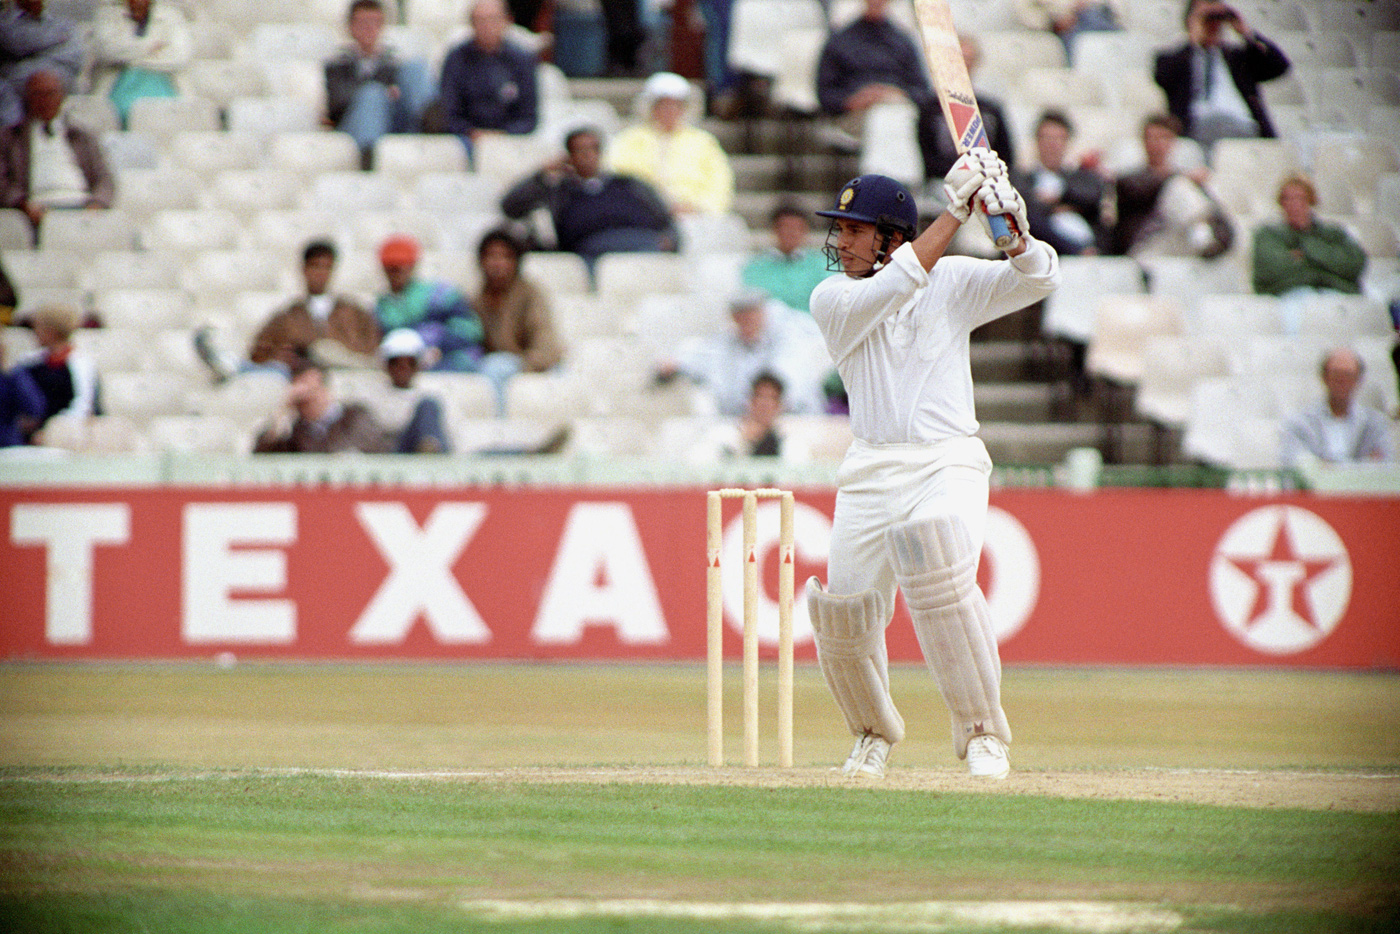 Sachin Tendulkar cuts on his way to his maiden Test century, England v India, 2nd Test, Old Trafford, 5th day, August 14, 1990